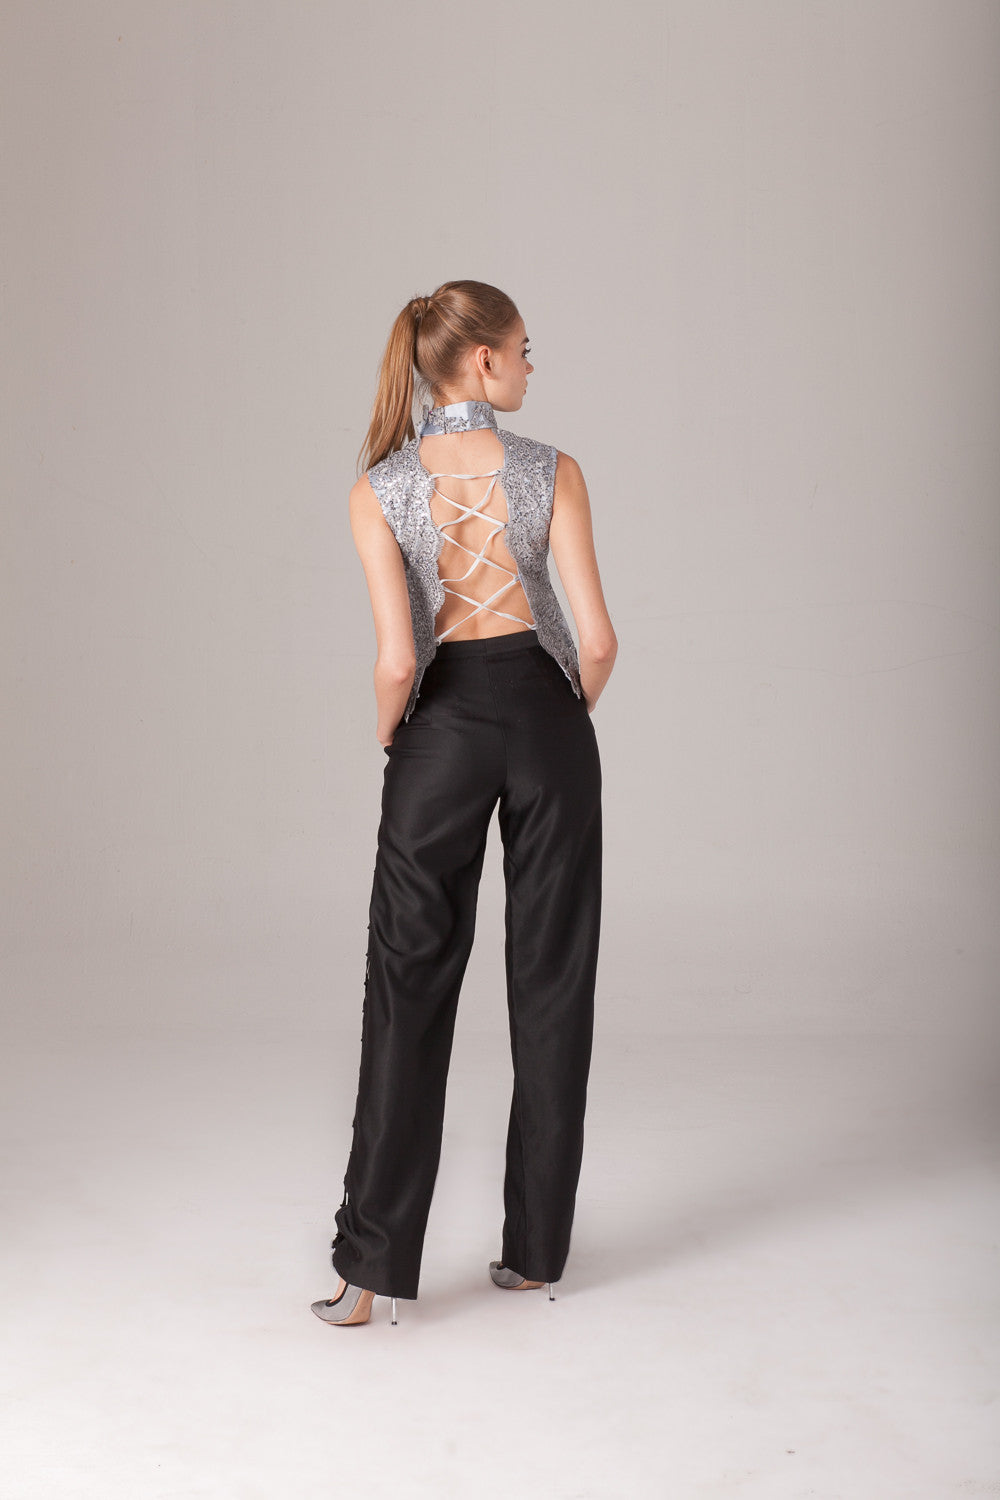 Qipology Tailored Lace Up Pants